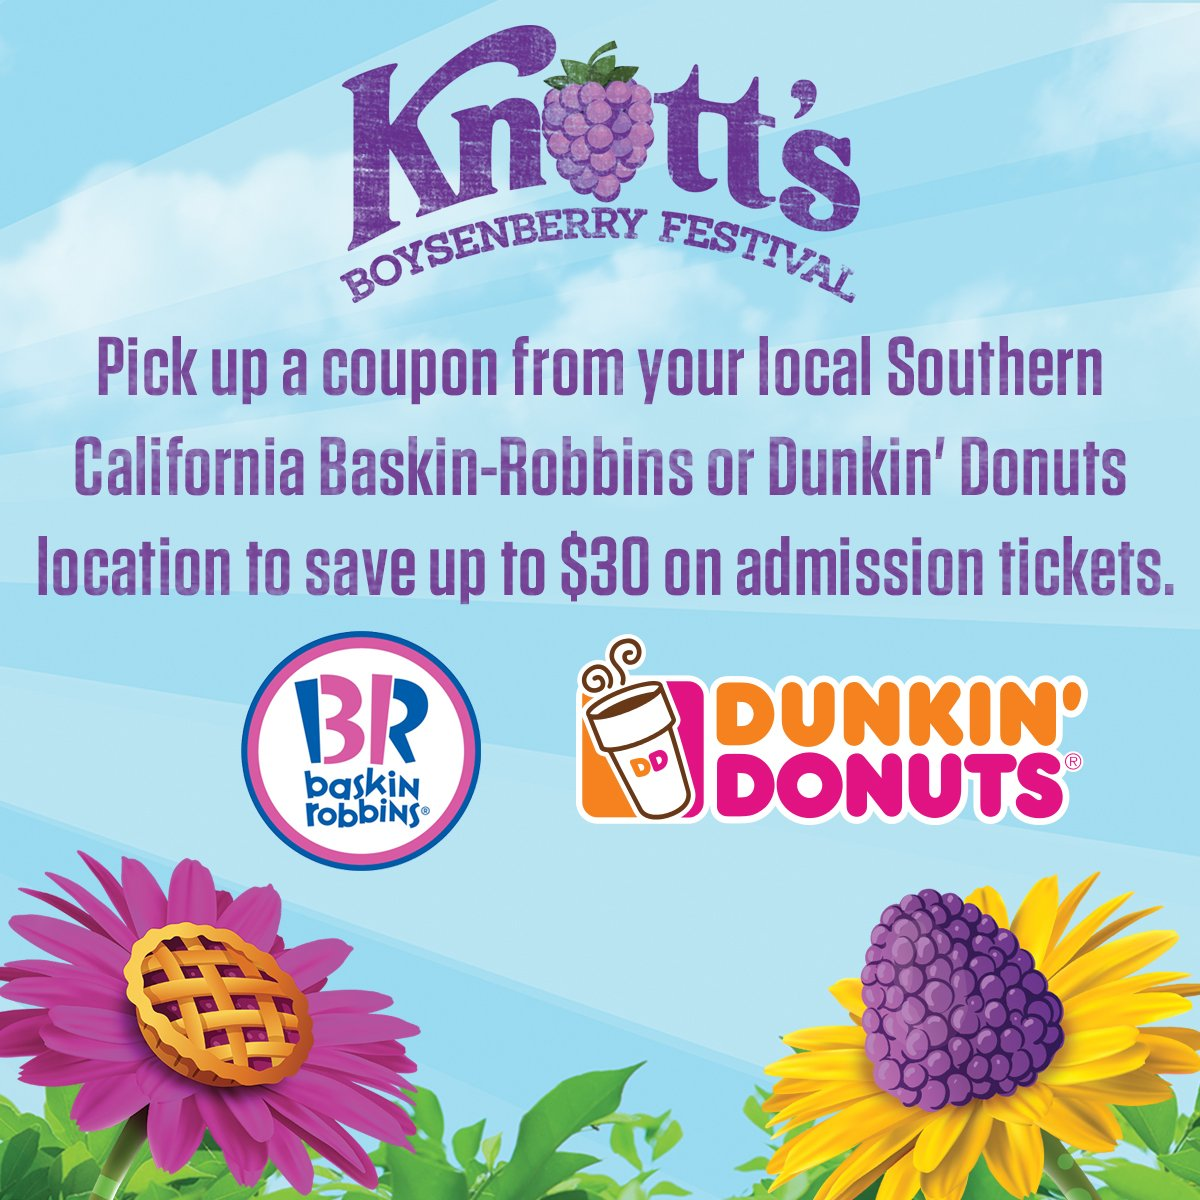 photograph relating to Knotts Berry Farm Printable Coupons called Discount coupons for knotts berry farm - Least difficult western in addition sam